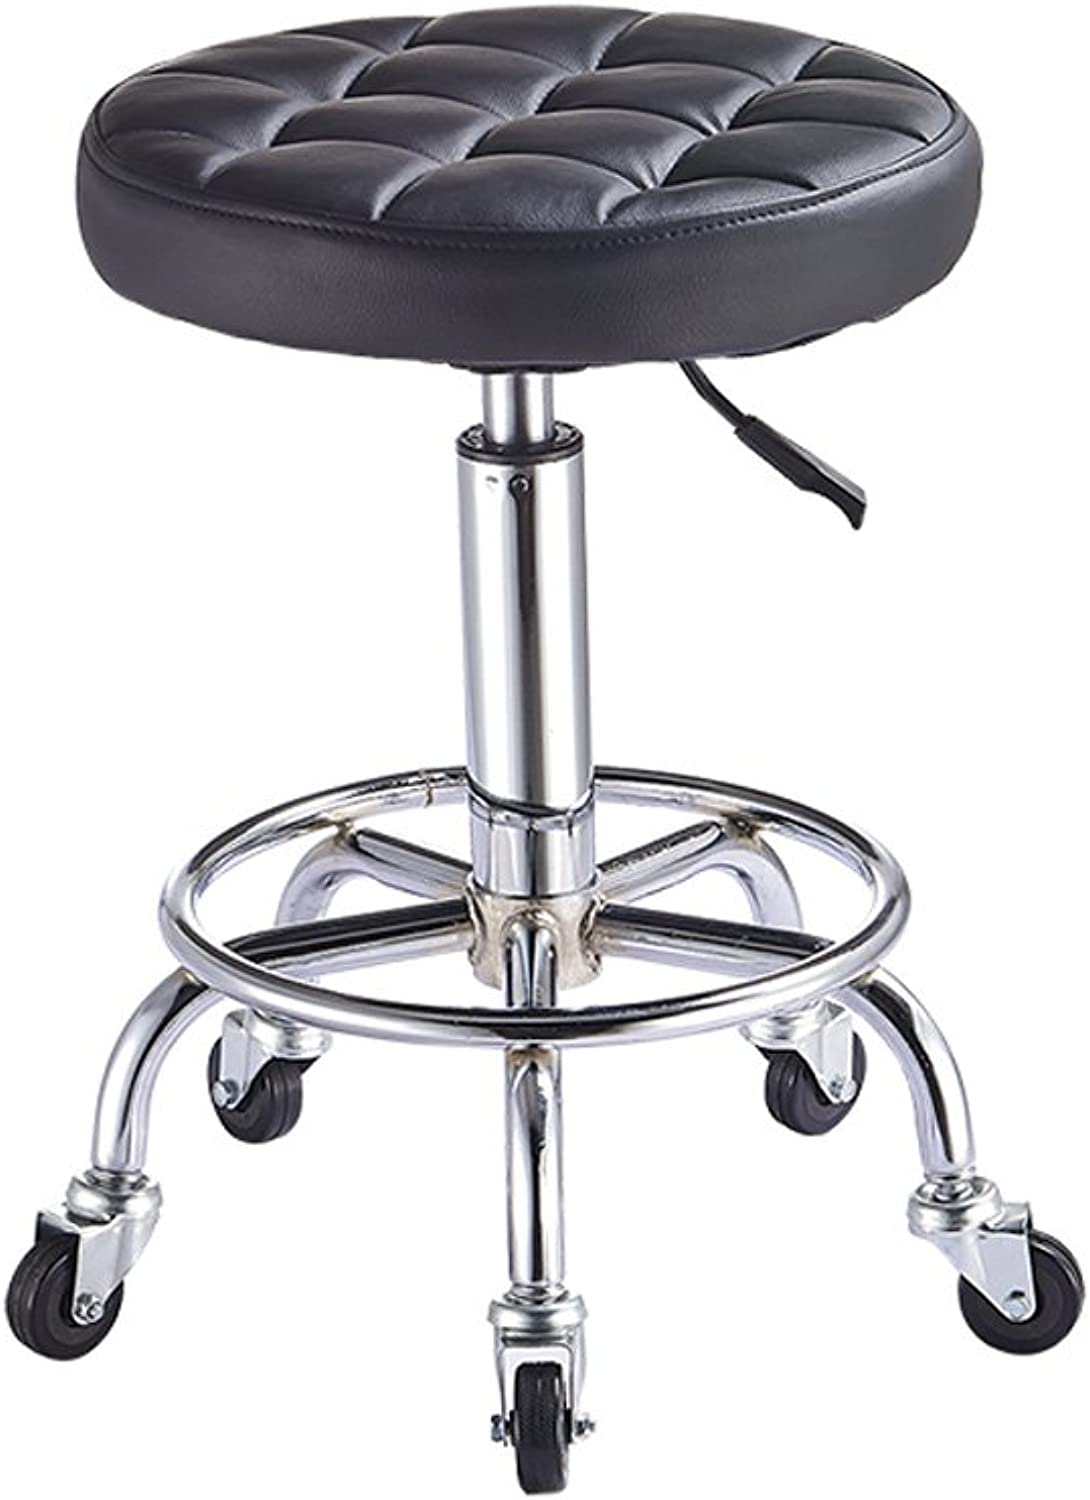 Rolling Swivel Stool Pneumatic Work Chair Adjustable Height with Casters Wheel 360 Degree redation for Home Office Salon Facial Massage Table (color   5)